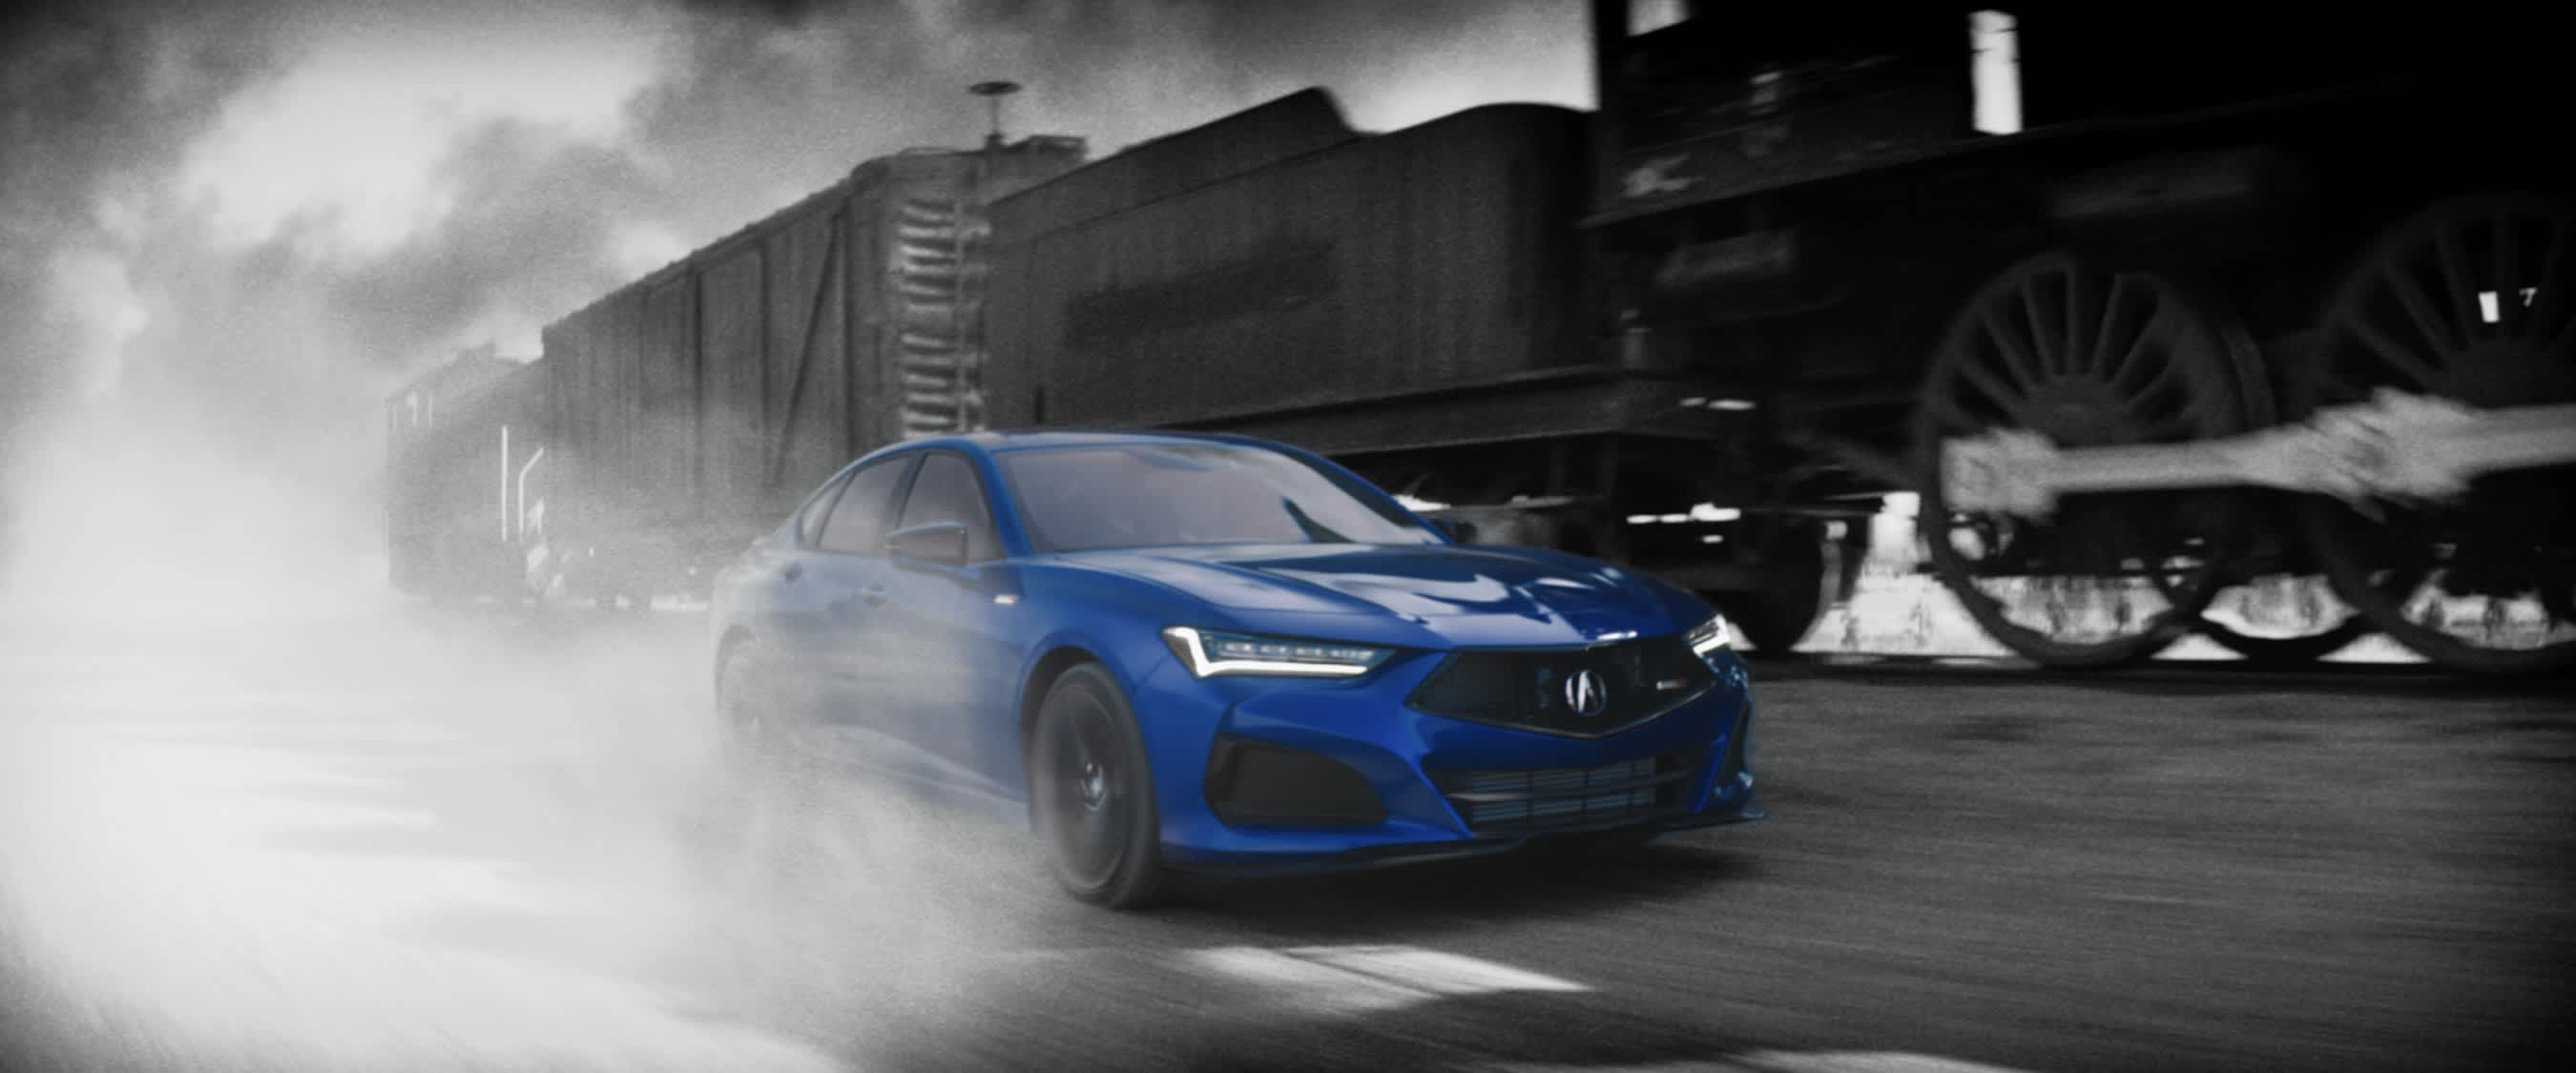 """New Acura ad features """"It's Oh So Quiet"""""""